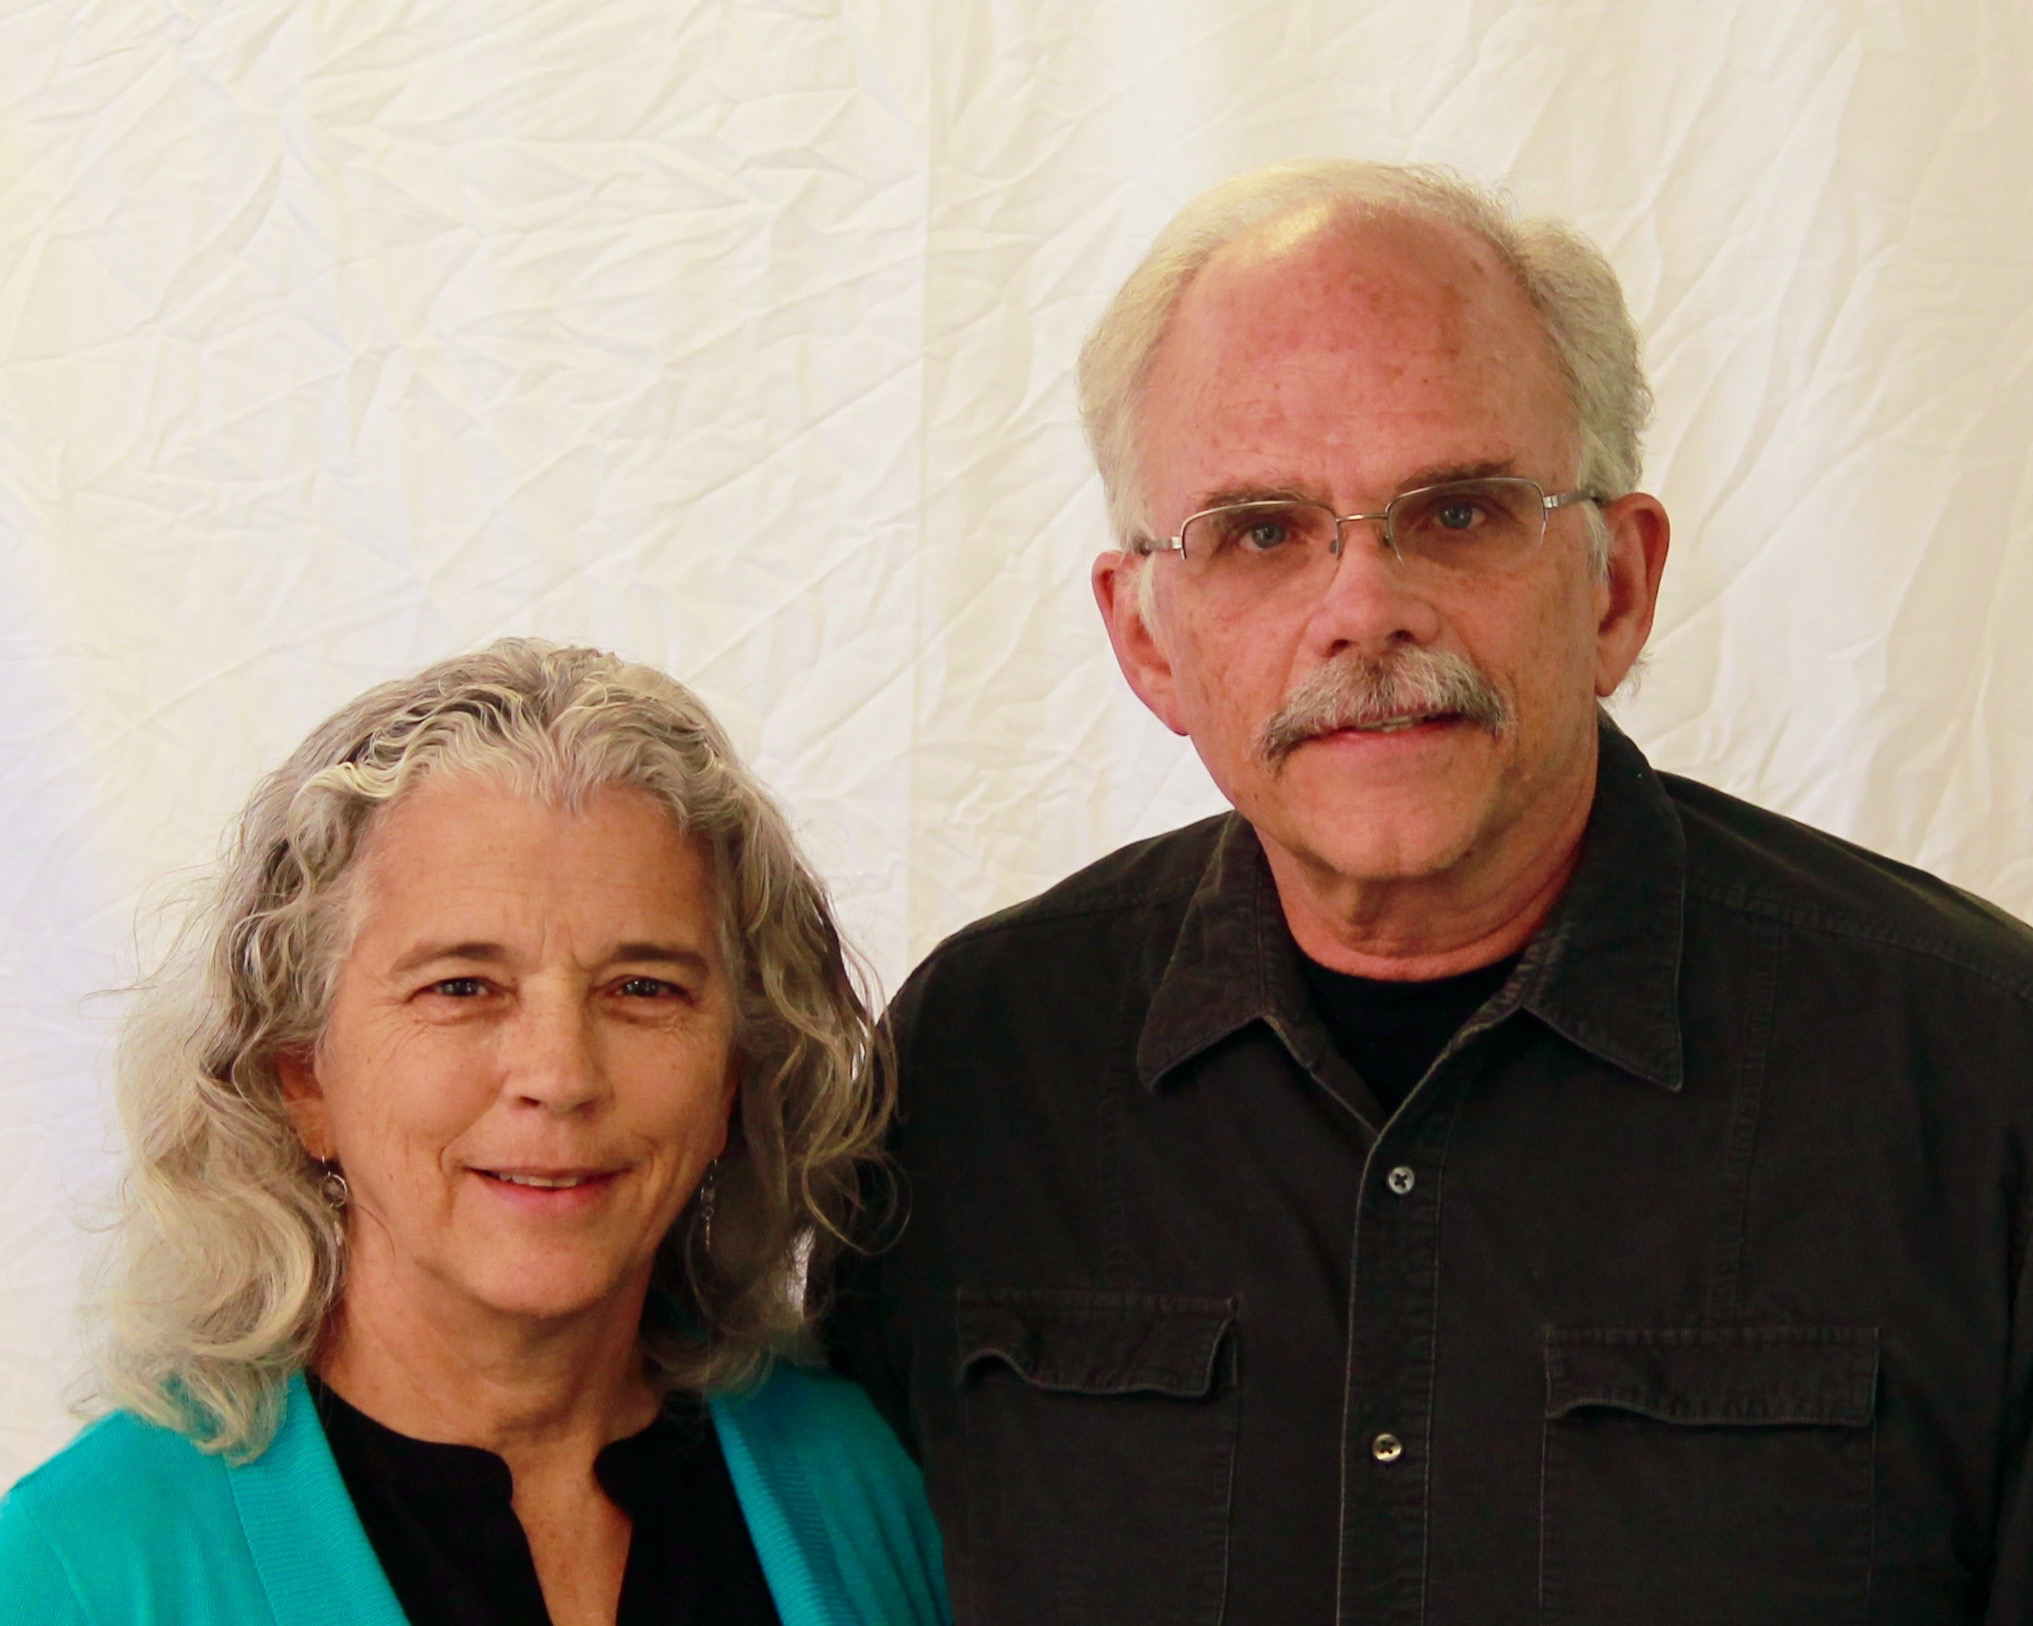 Jim and Juanita Watters